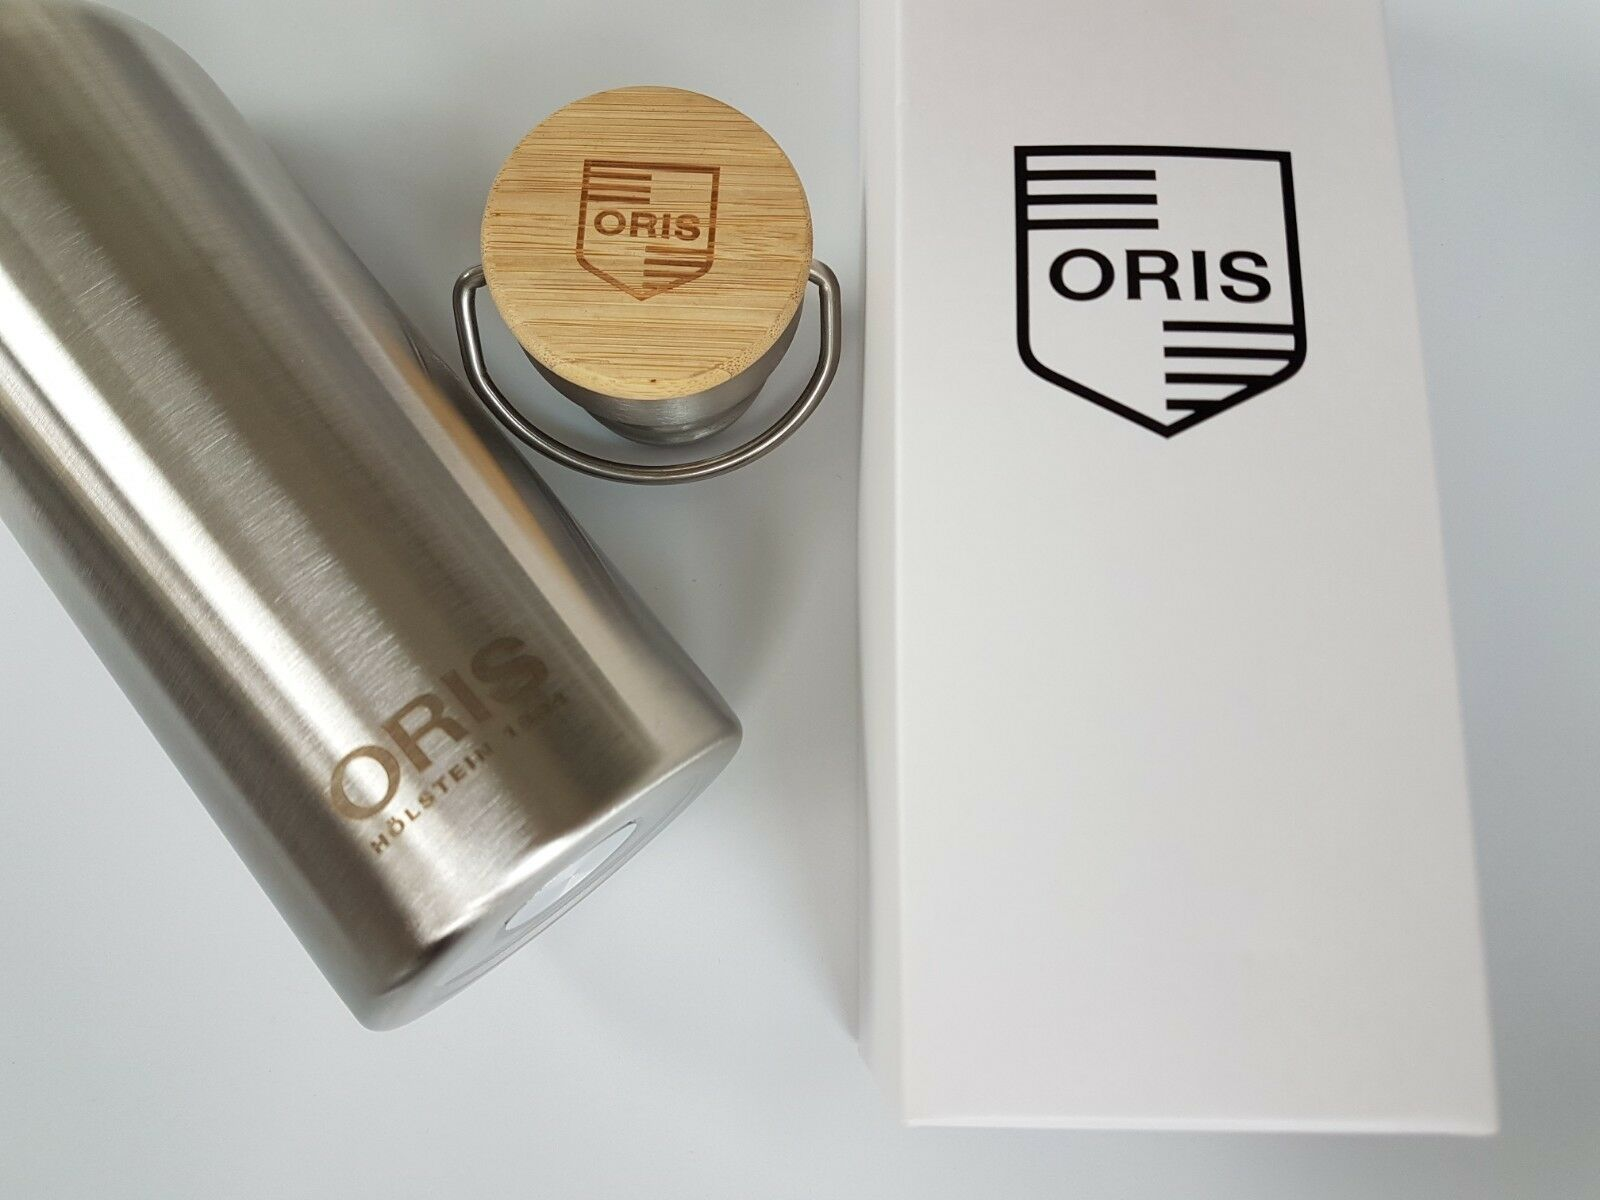 Oris Luxury Stainless  Steel Water Bottle New & Boxed  free shipping on all orders